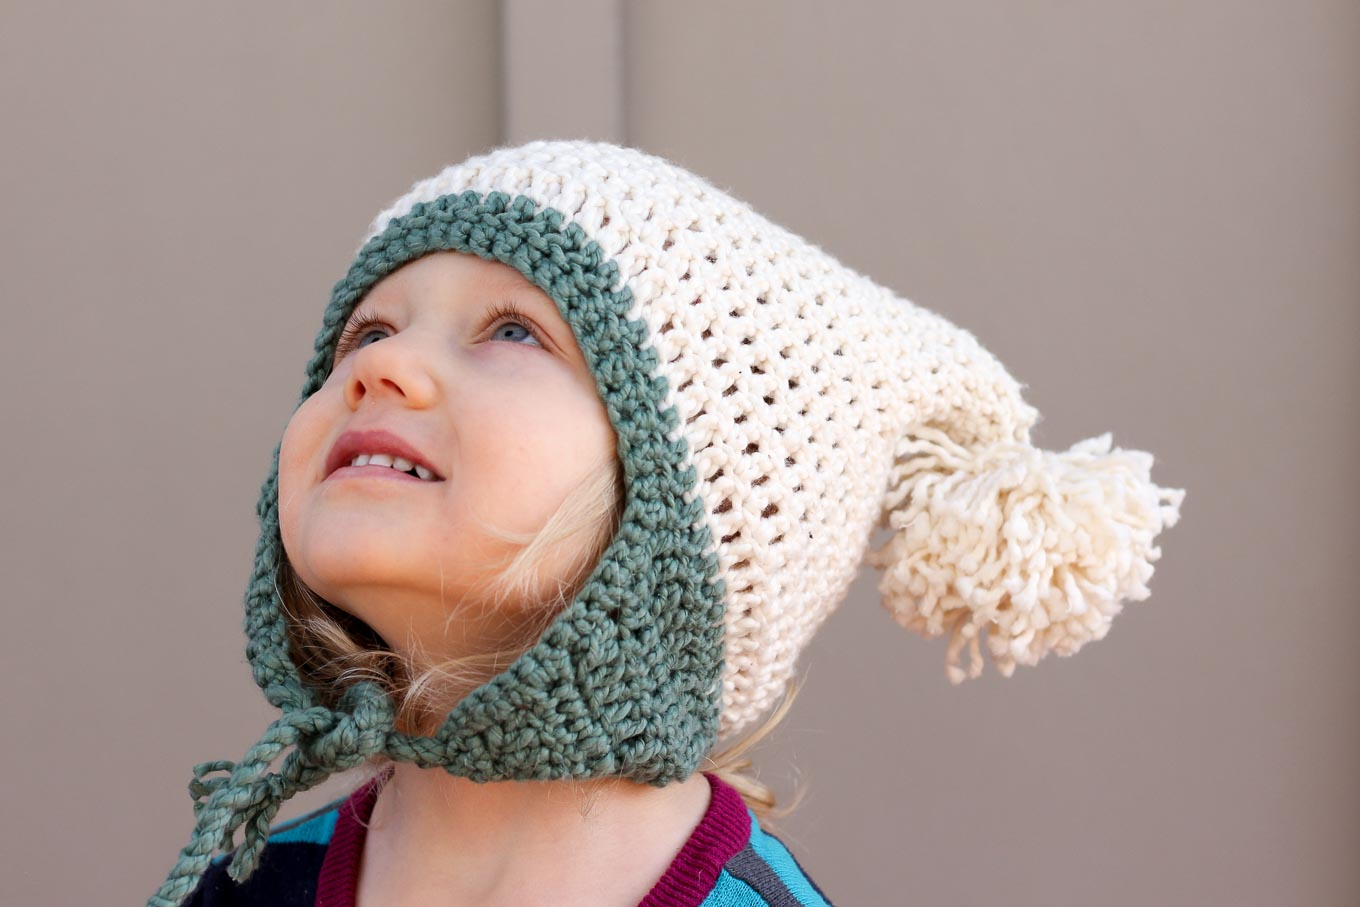 Crochet Newborn Pom Pom Hat Pattern : Free Beginner Crochet Beanie Hat Pattern